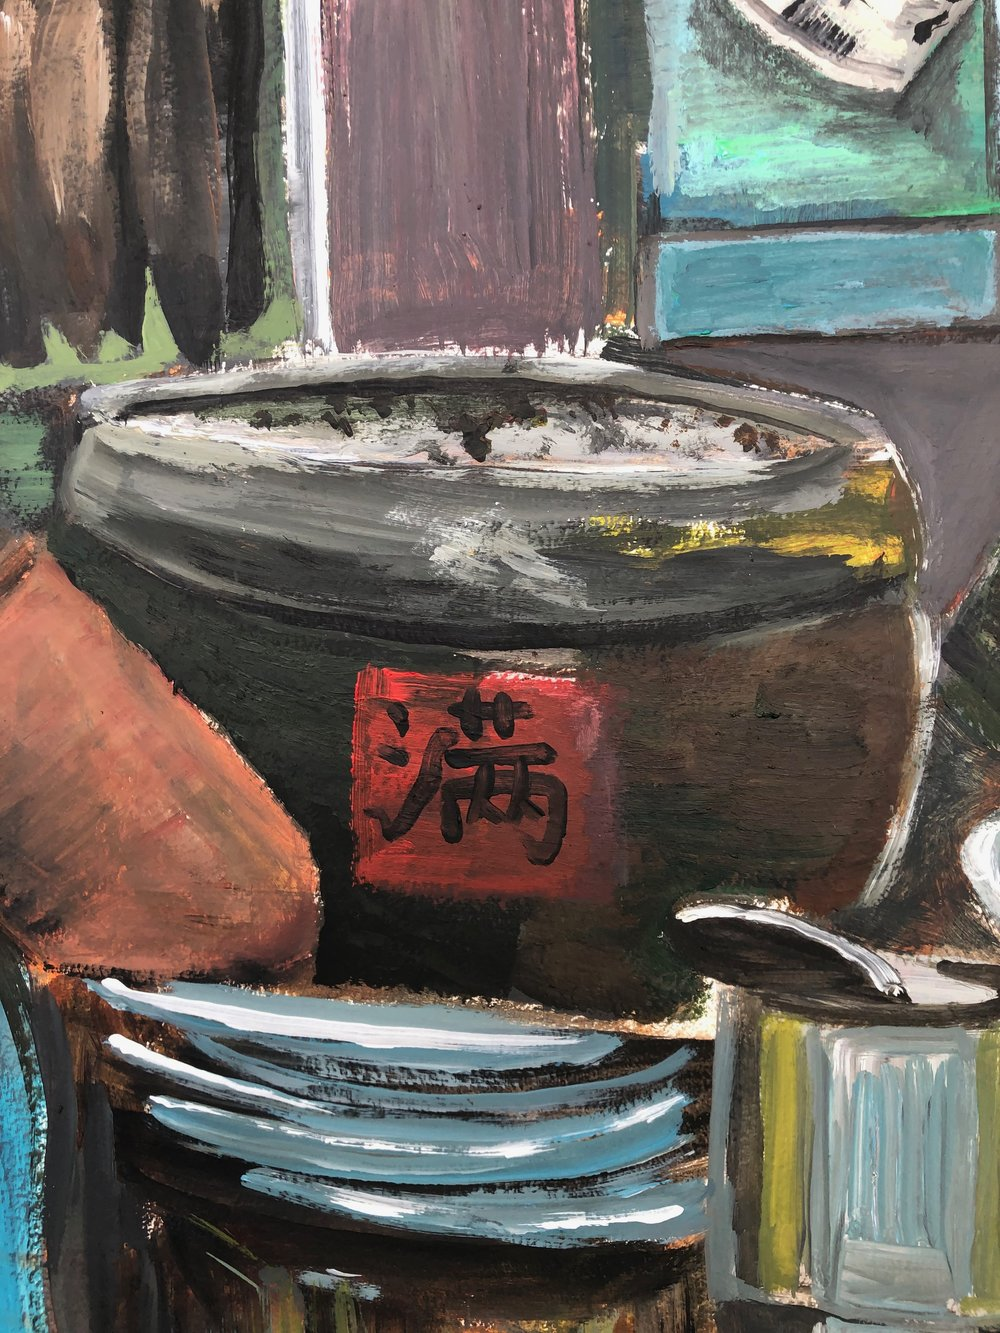 The Chinese character pronounced 'mun' means full and is symbolic meaning that whatever it contains - may it always be full. This word is usually pasted onto urns used for storing staple food like rice.